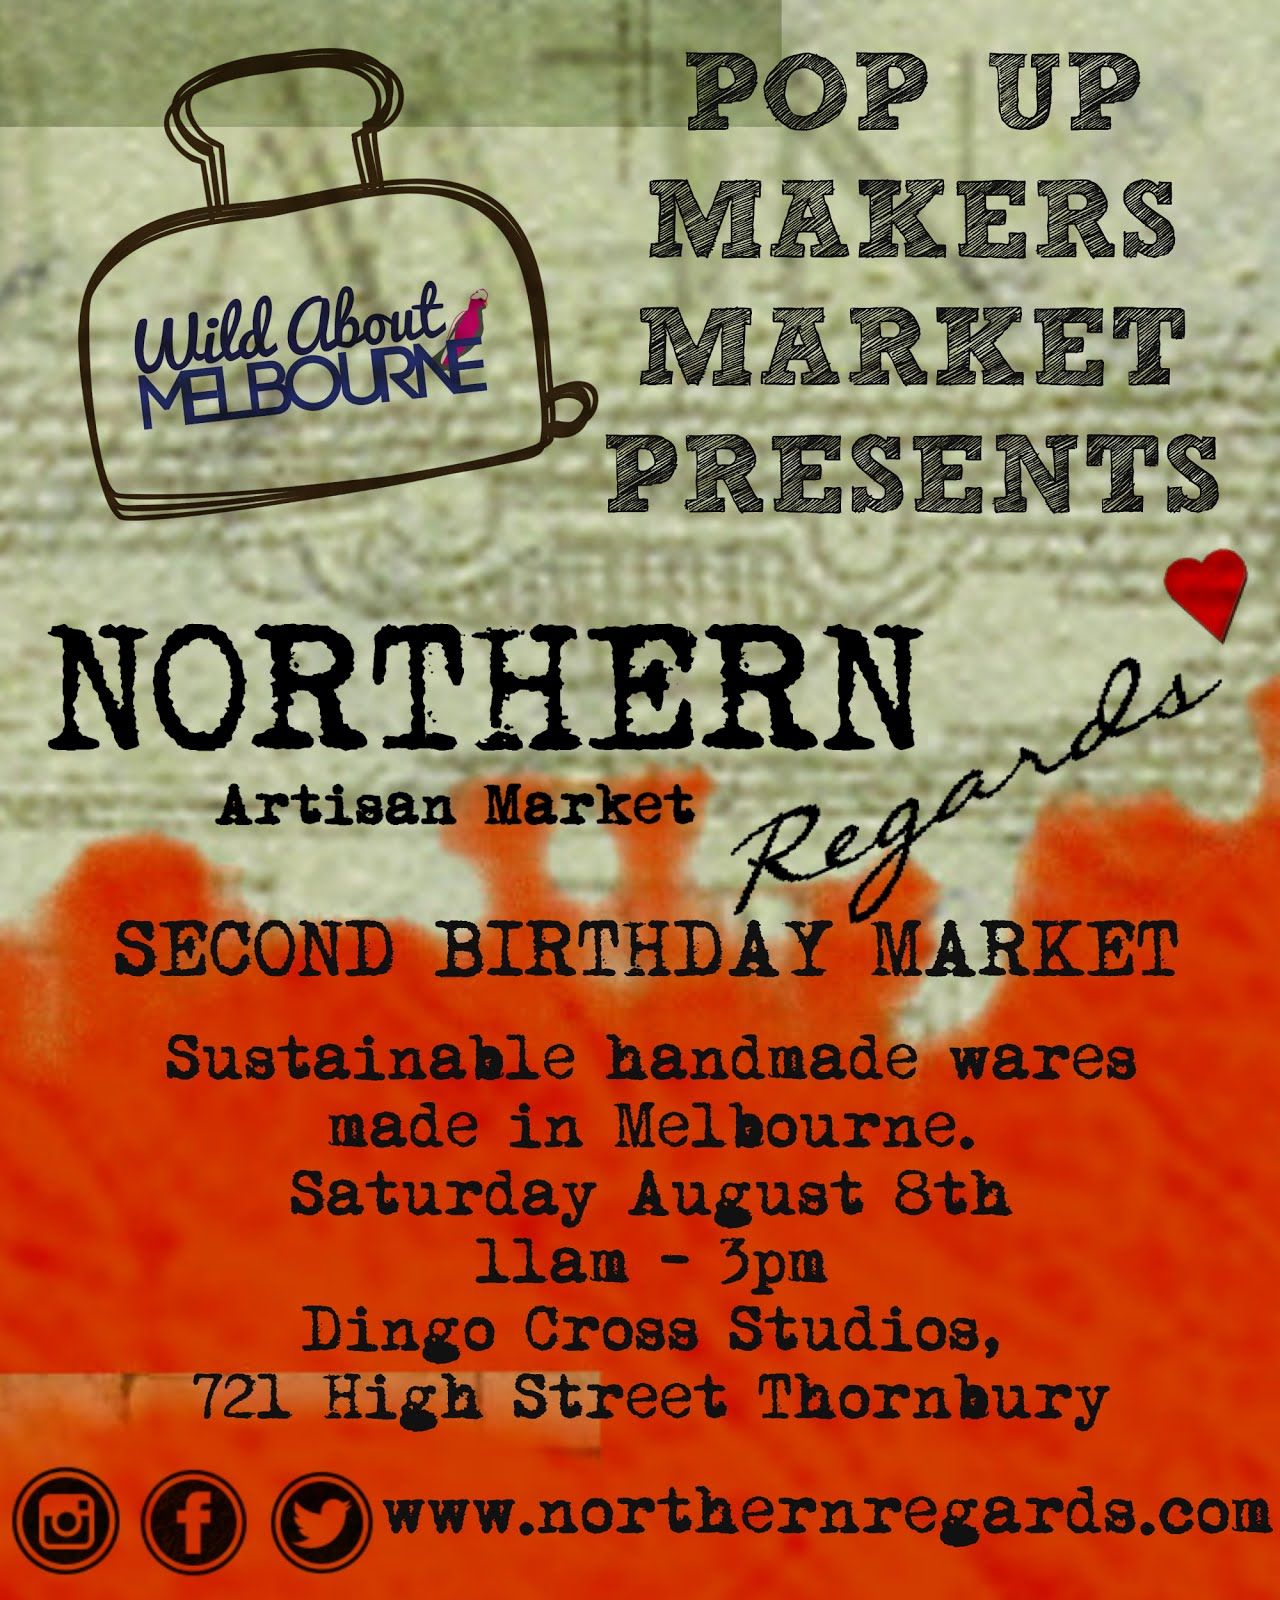 Wild About Melbourne Pop Up Makers Market presents Northern Regards SECOND BIRTHDAY market